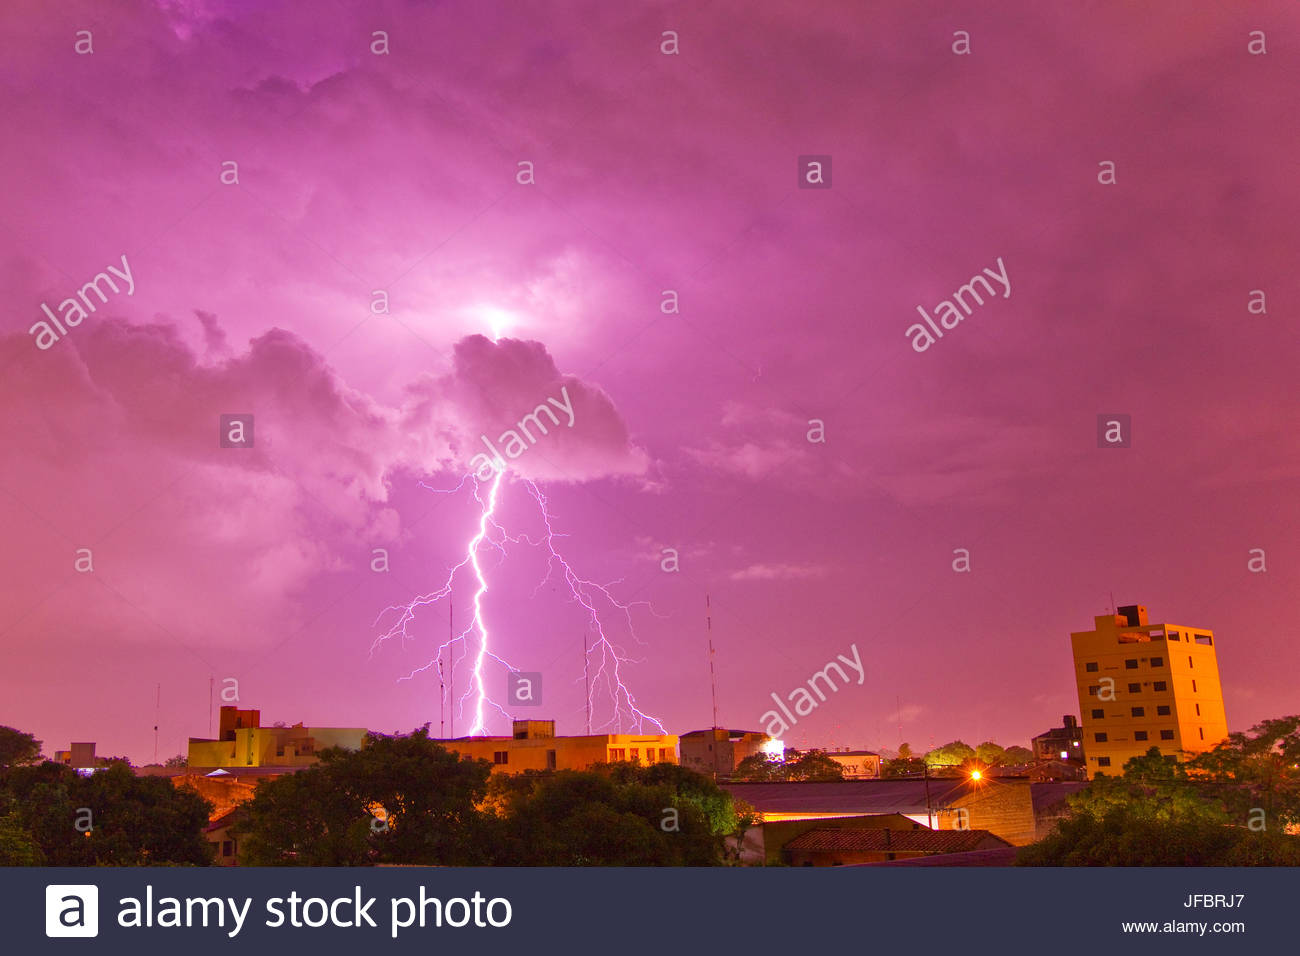 A lightning bolt striking down in the city of Asuncion, Paraguay during an intense lightning storm. - Stock Image